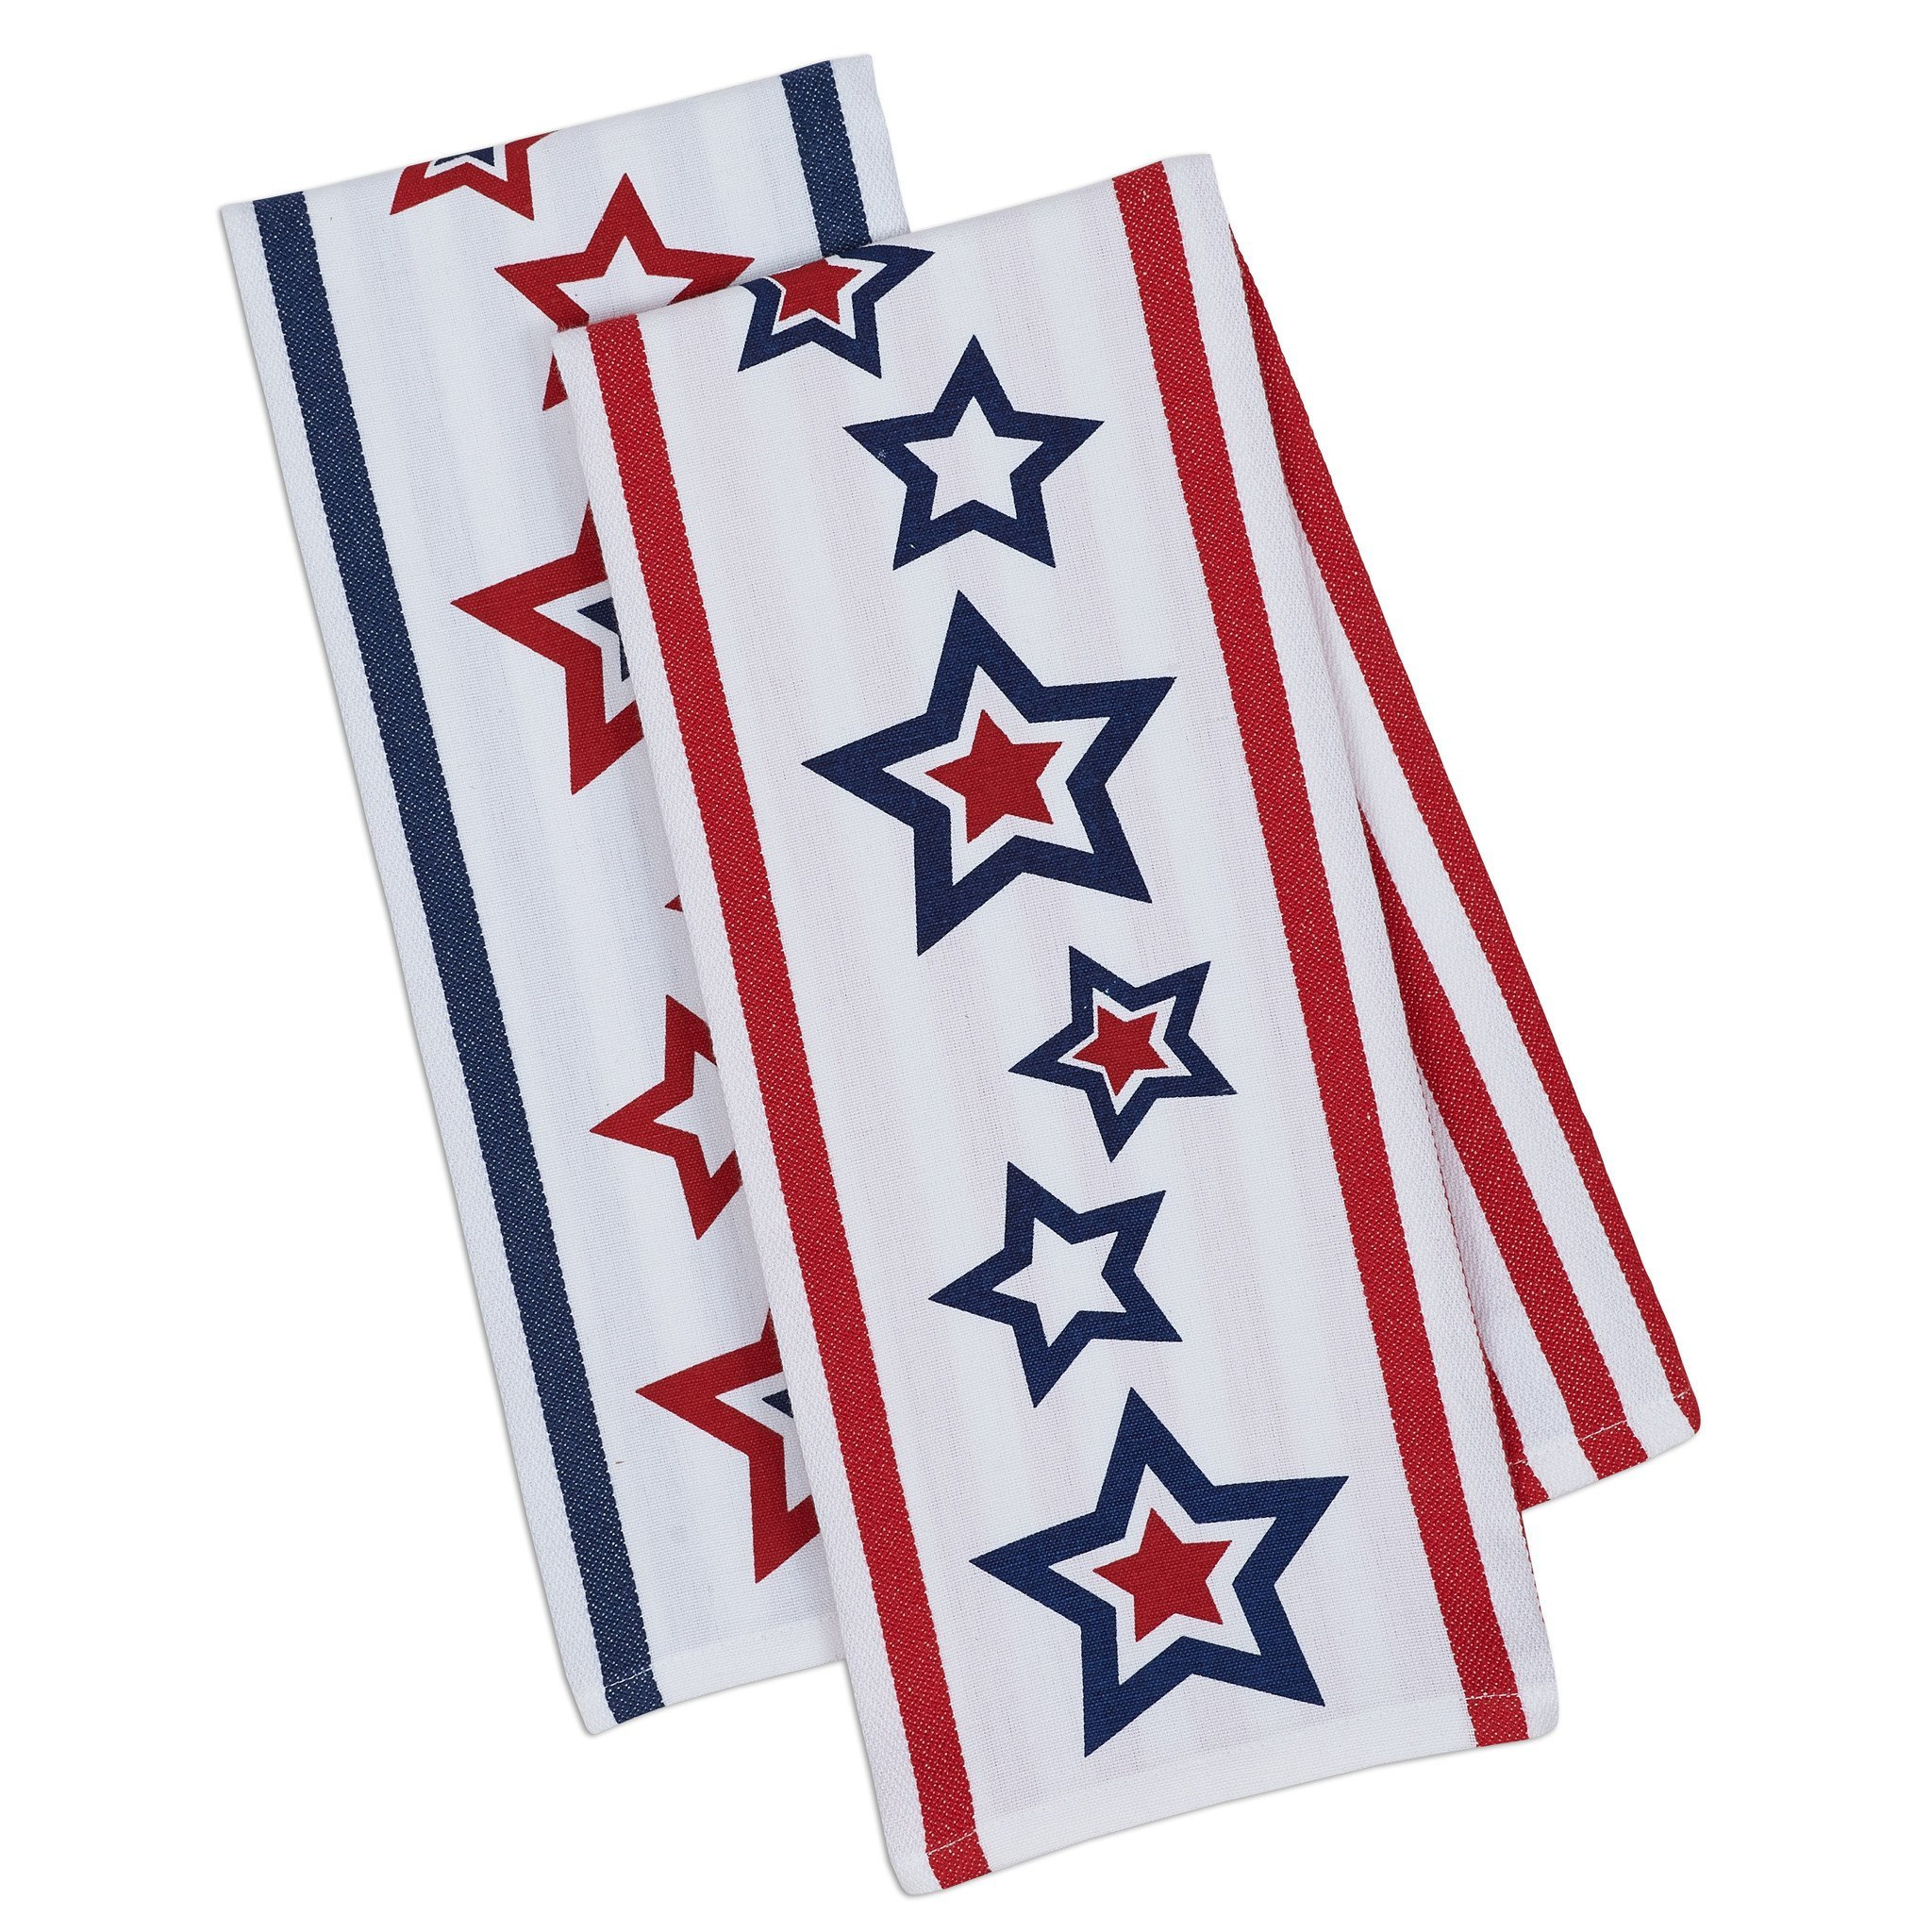 Ayuni Gifts of the World Patriotic Liberty Ruffle Apron with Matching Stars & Stripes Cotton Print Dish Towel (Red White & Blue Stars)